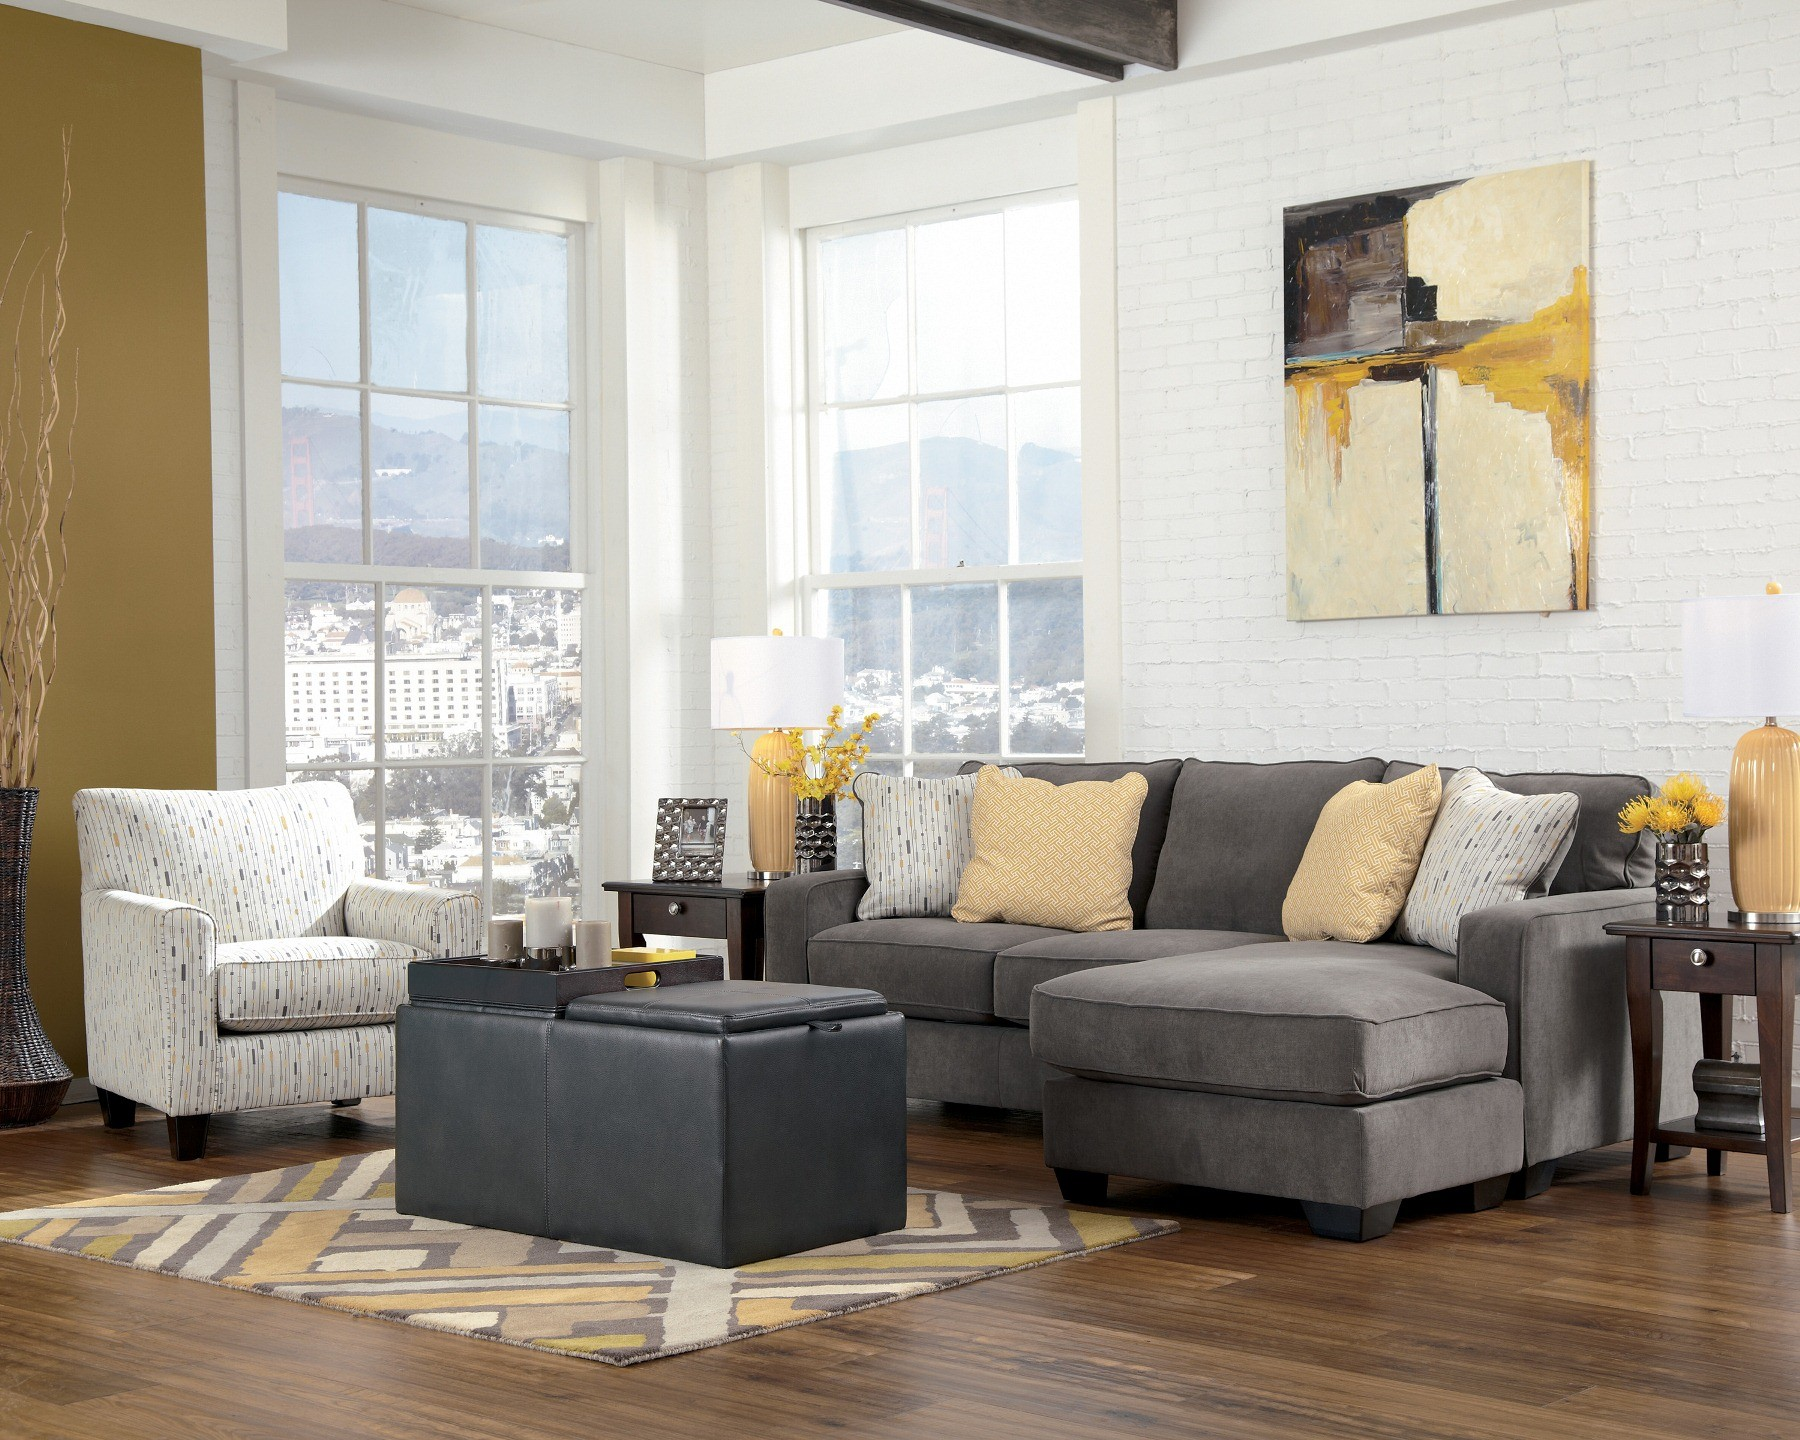 Hodan Marble Living Room Set from Ashley 79700  Coleman Furniture